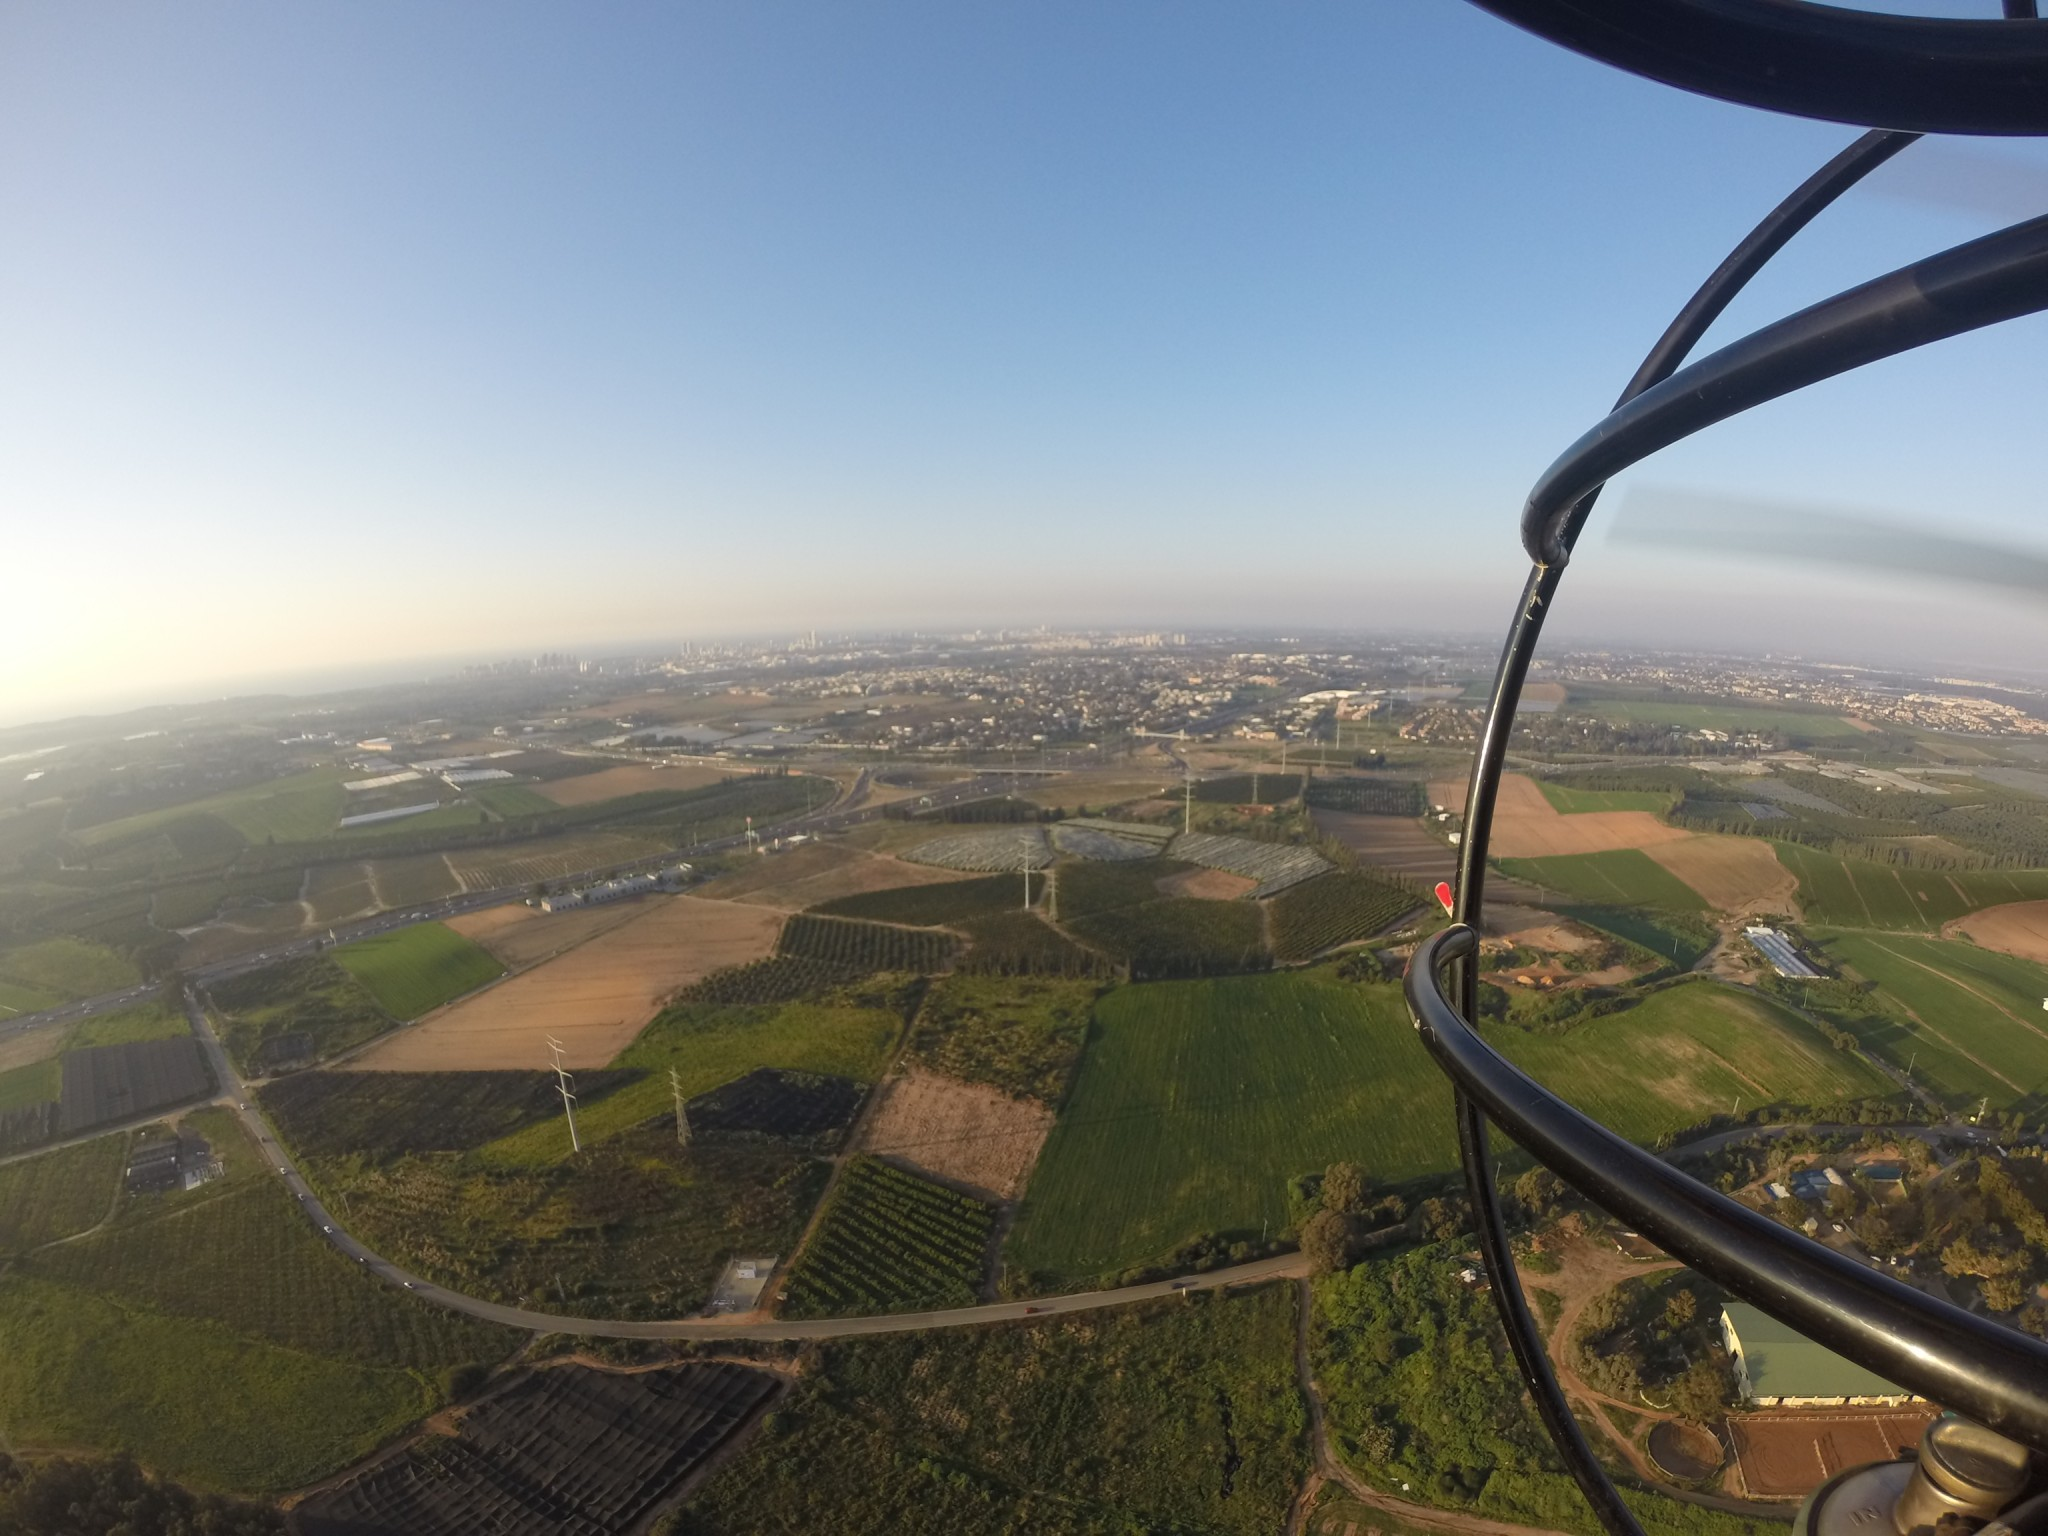 Seeing Israel from above. Photo courtesy of Extreme Israel